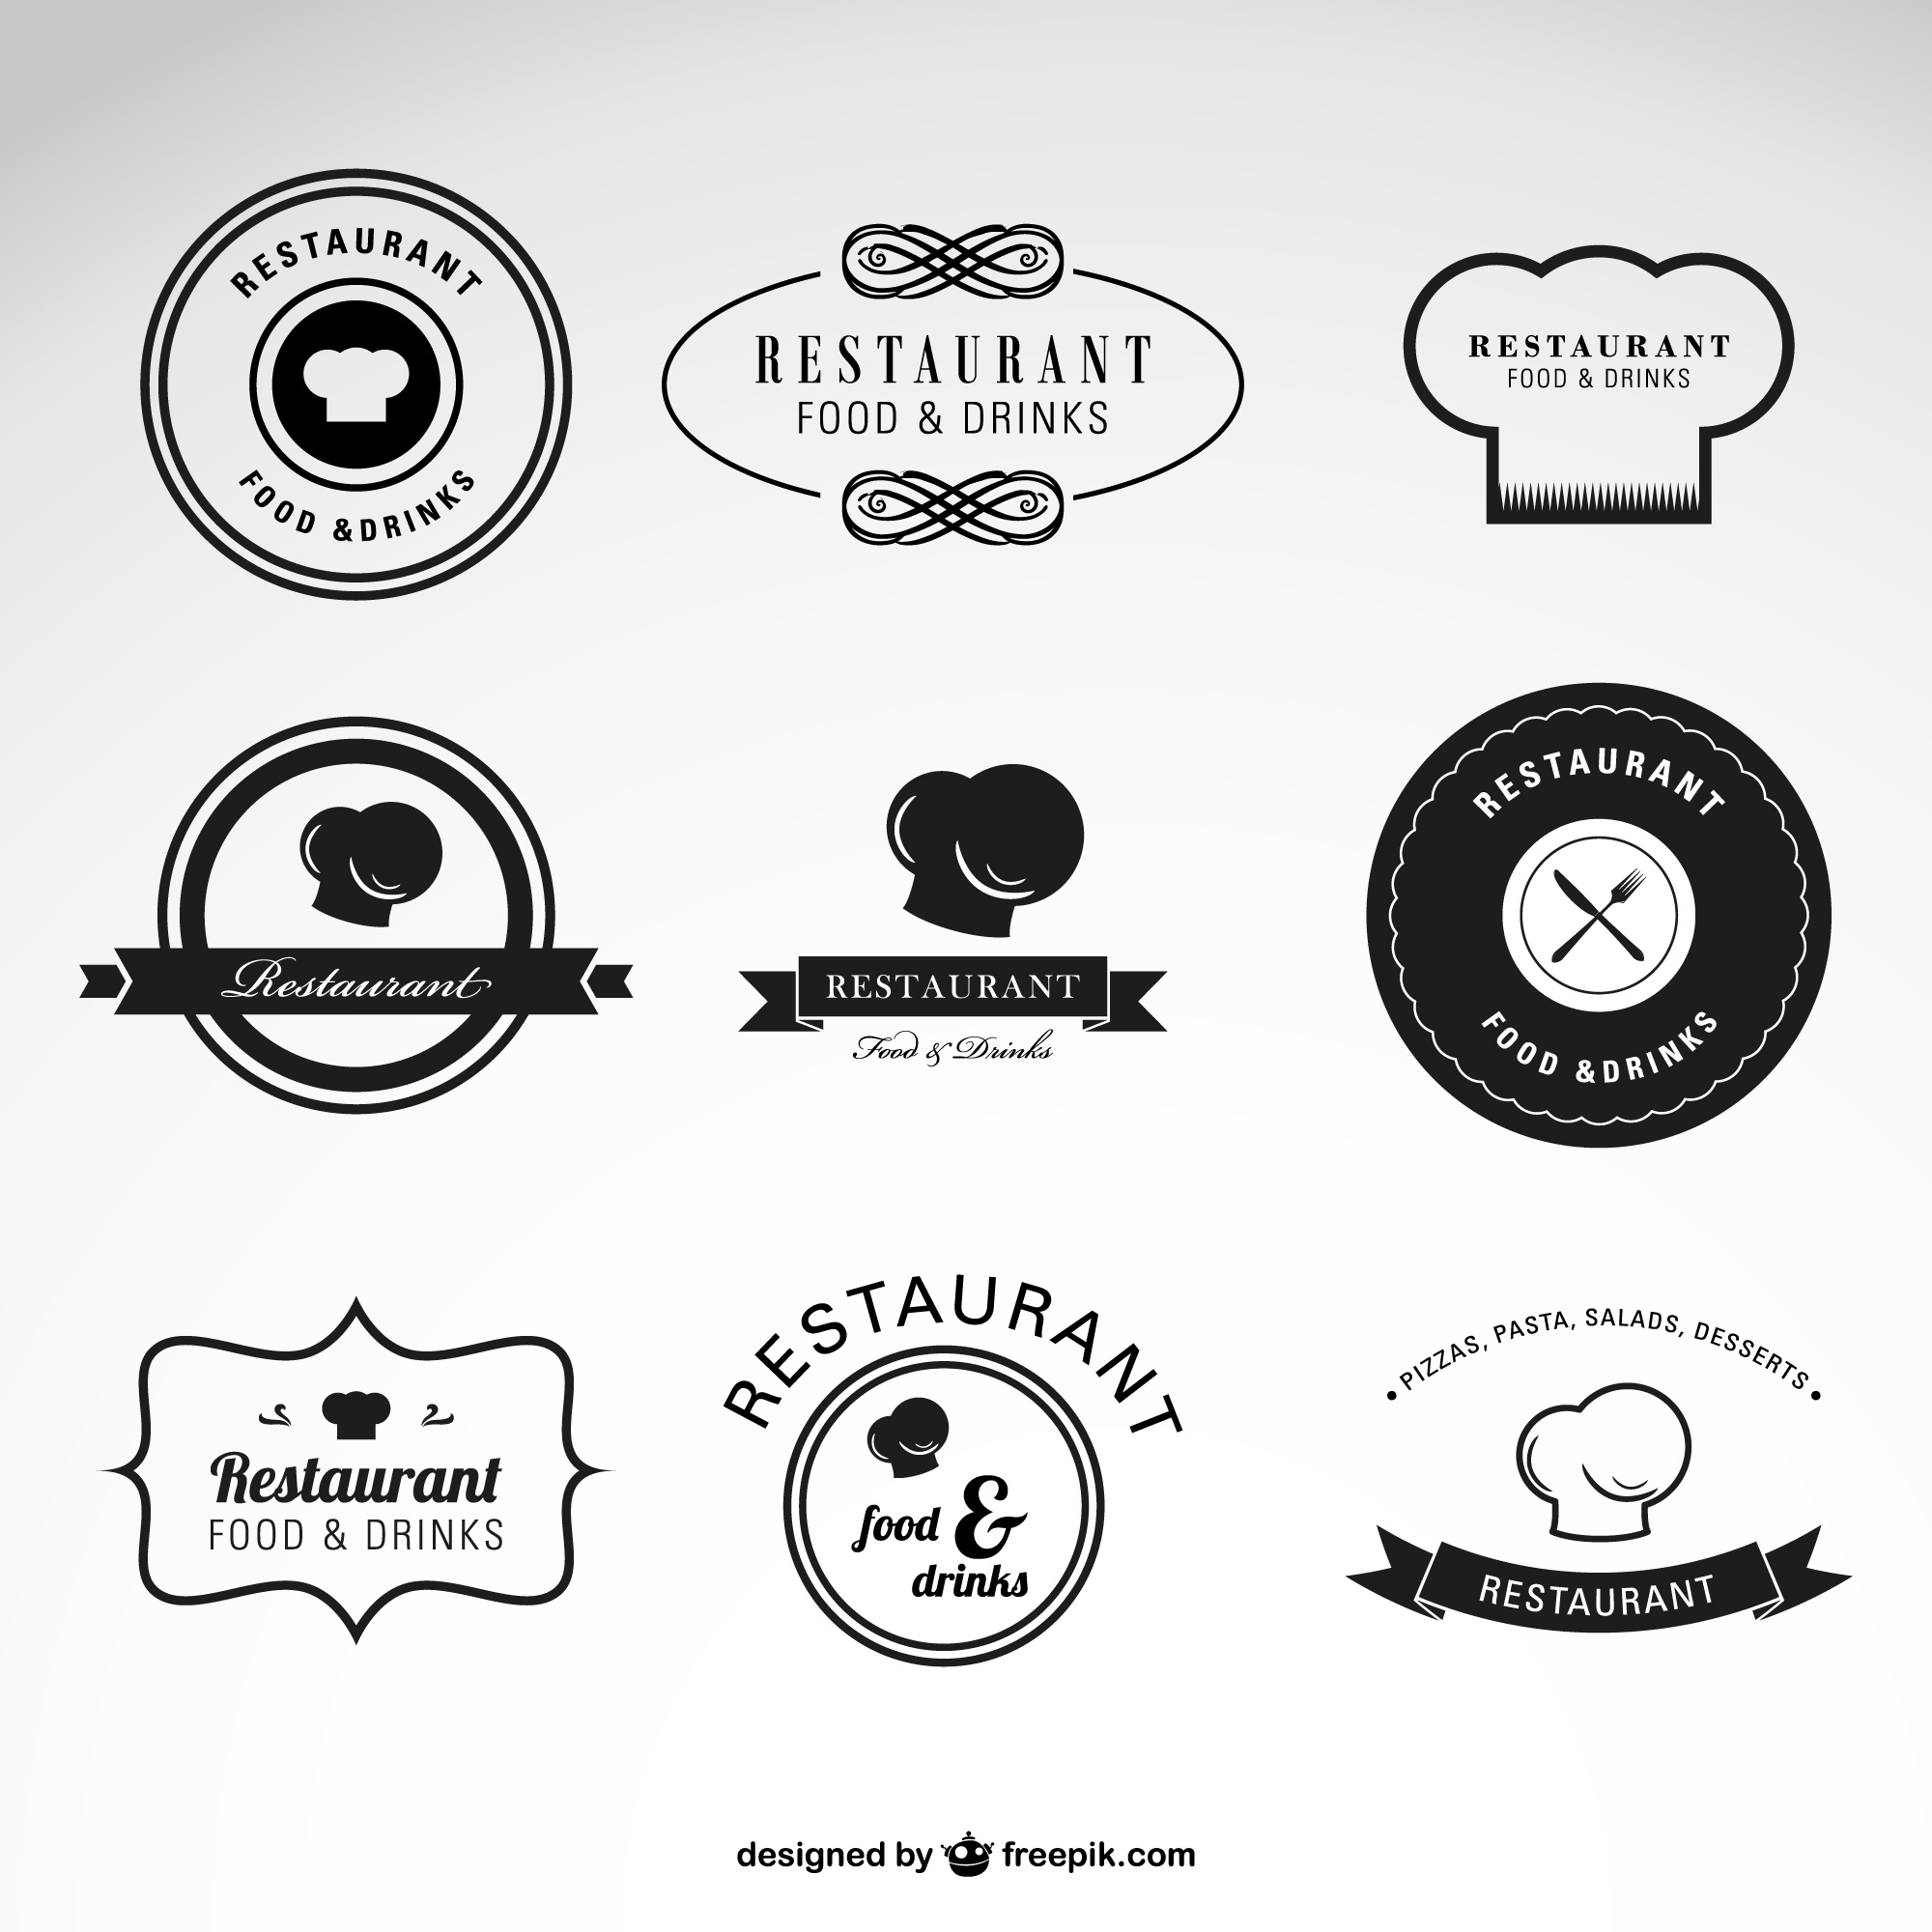 Restaurant food and drinks vector logos